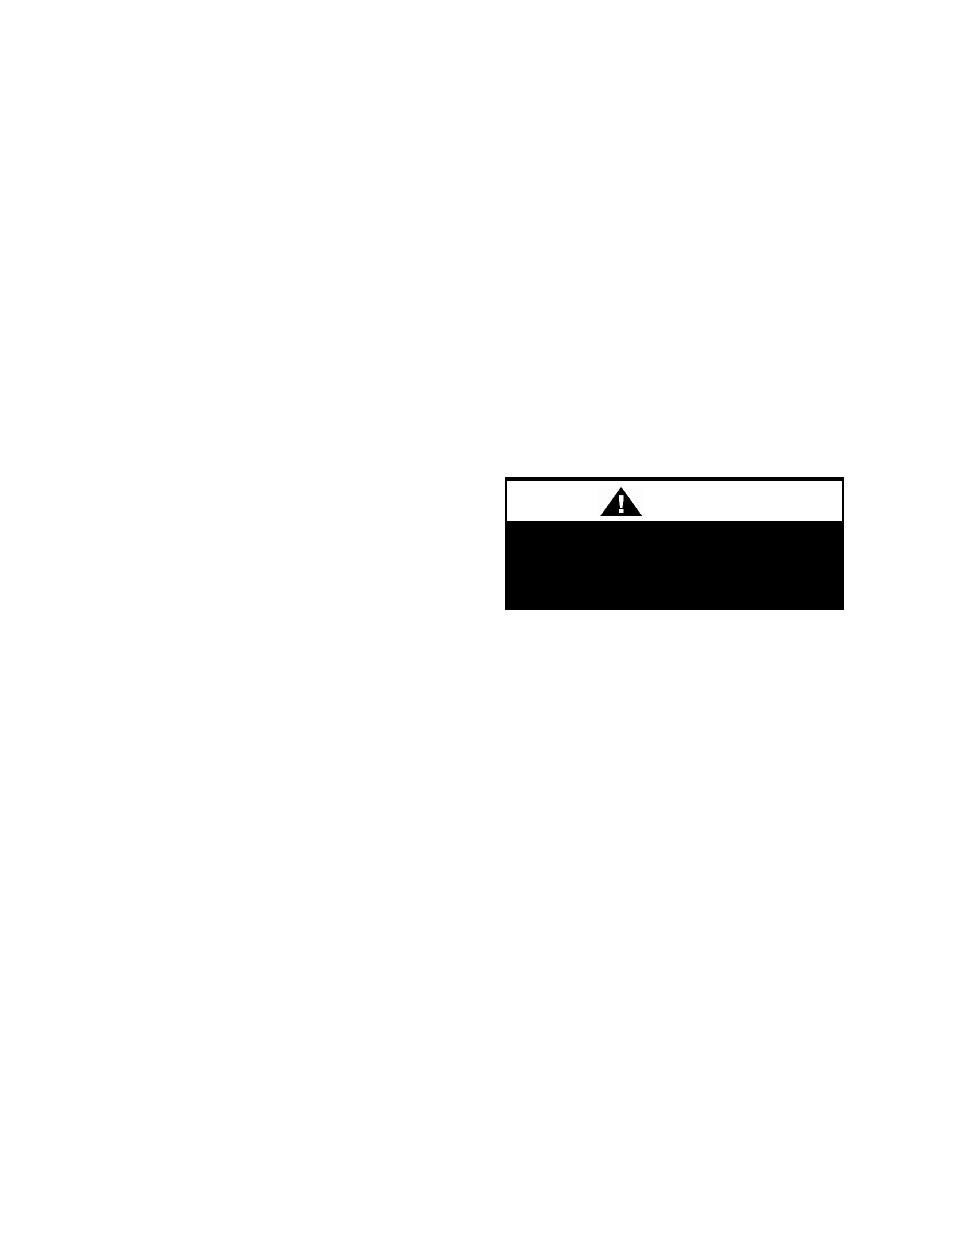 Caution | AAON RN-140 User Manual | Page 69 / 116